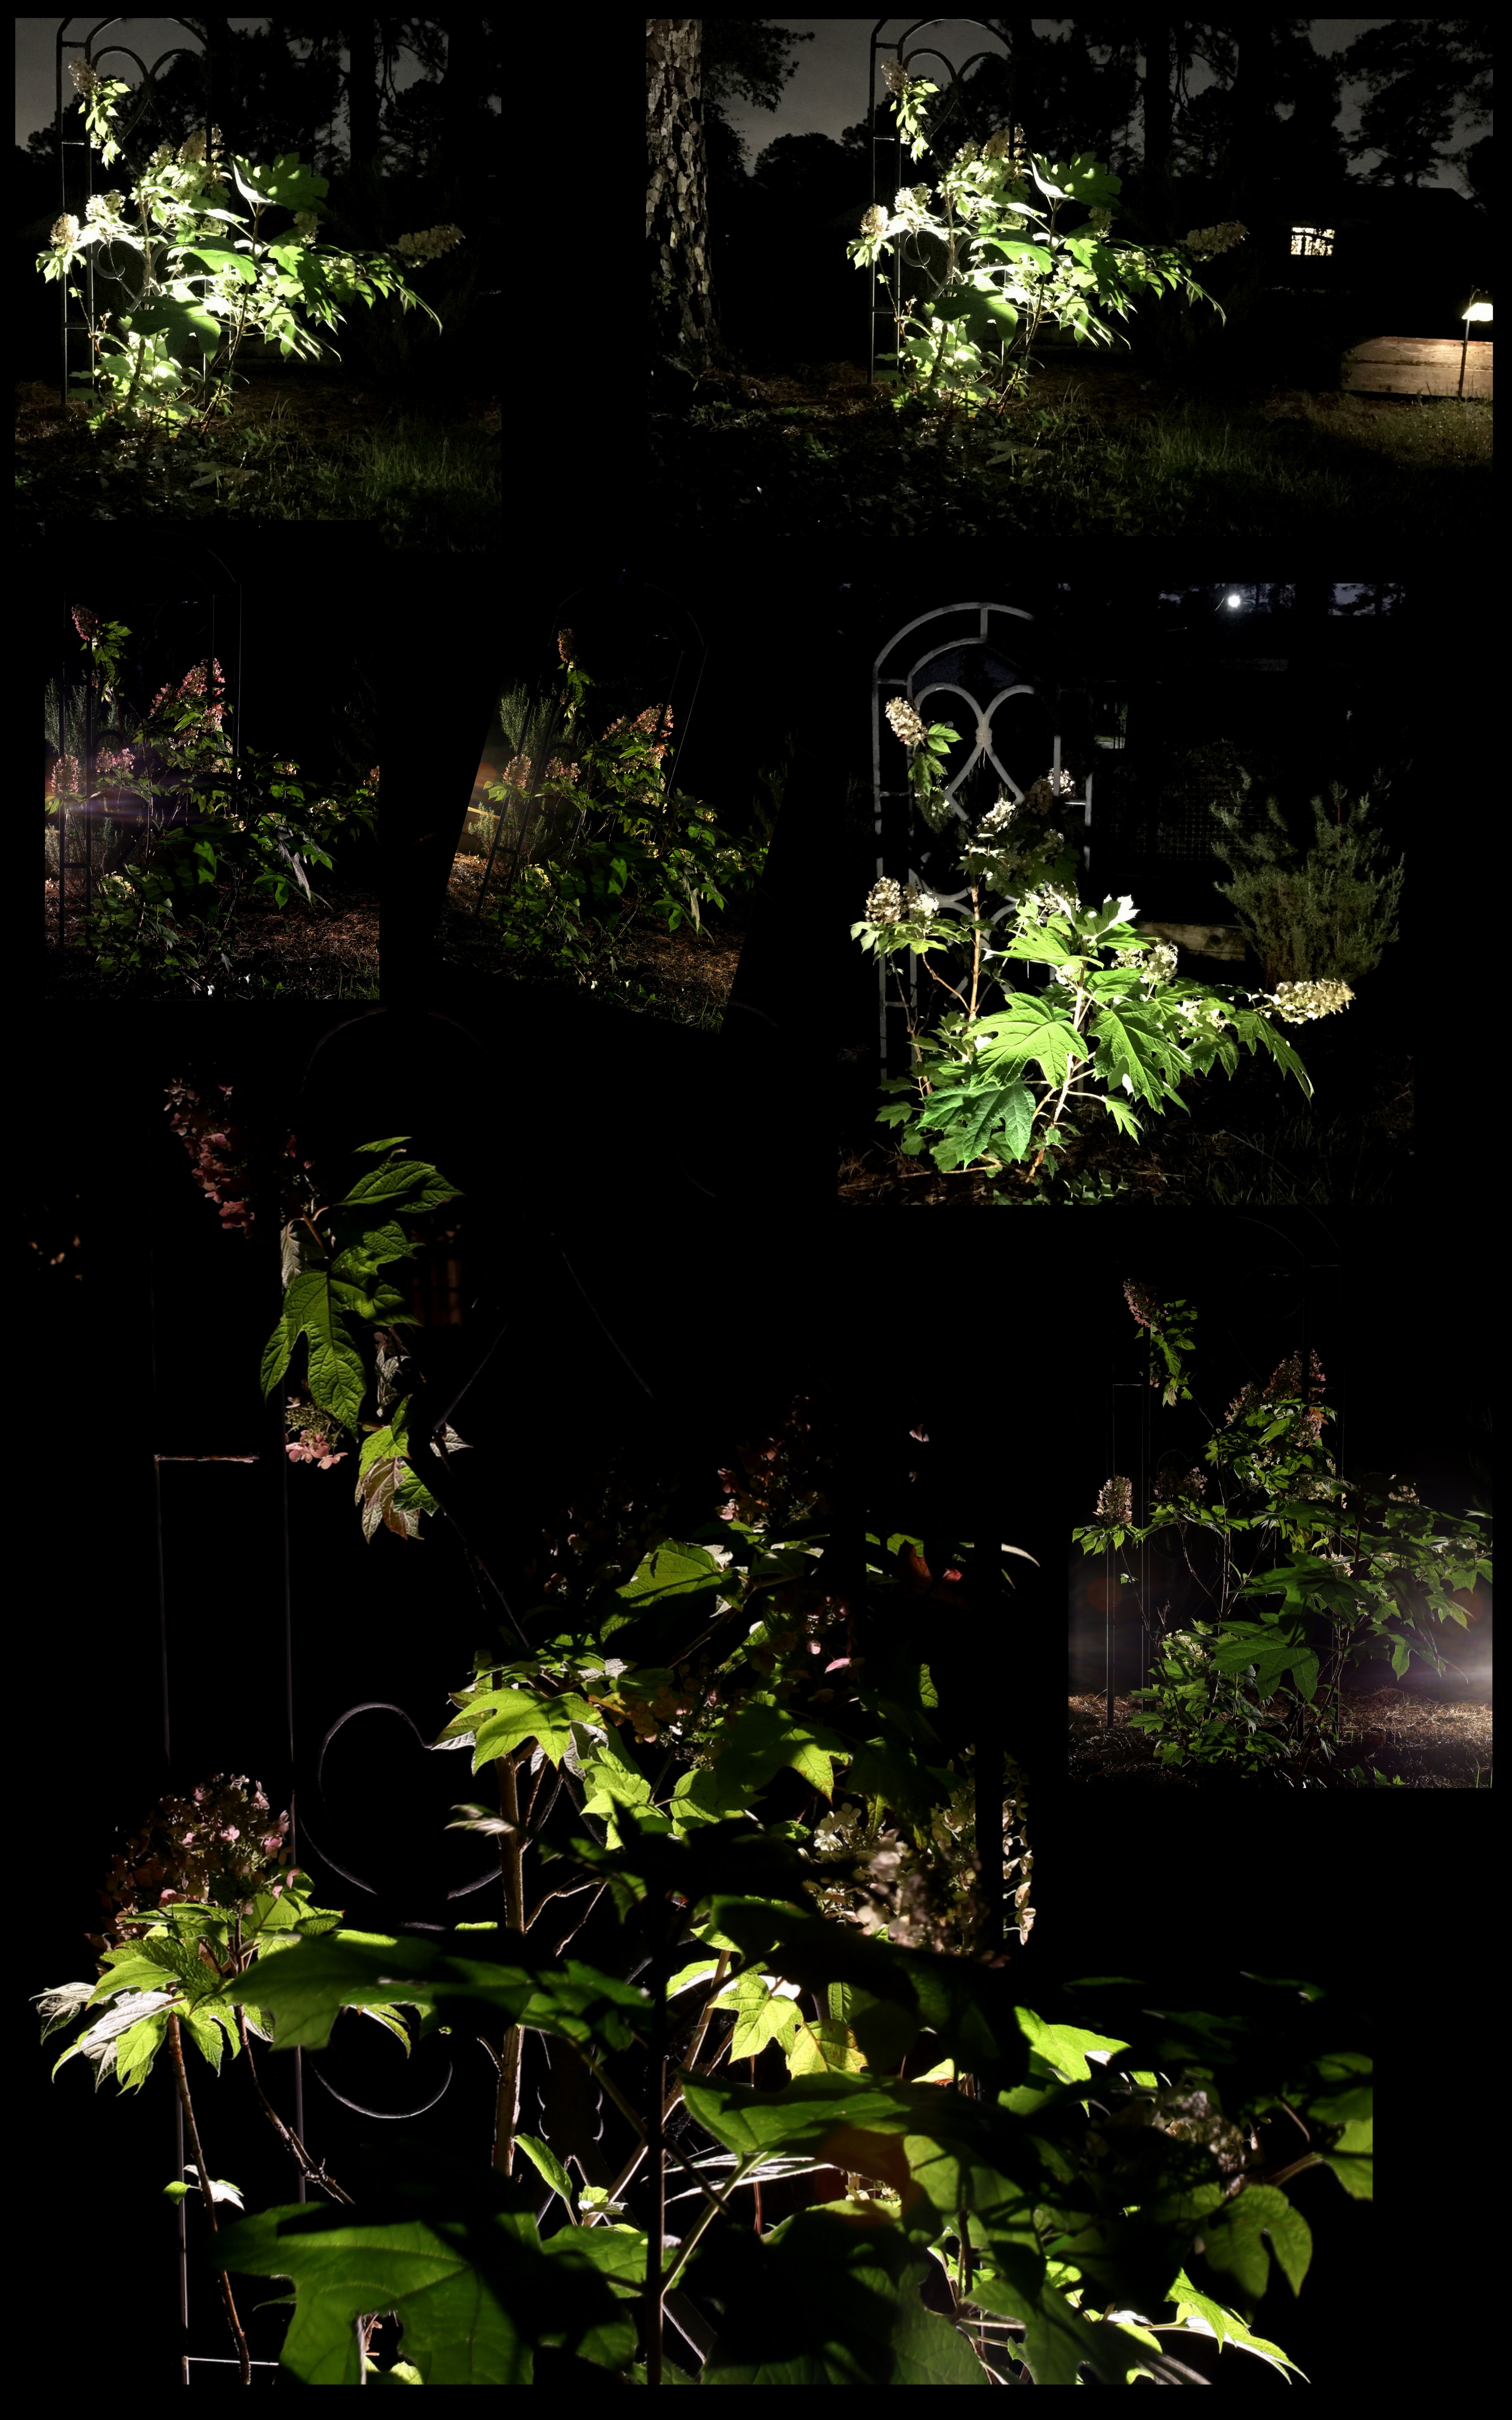 Photography ~ Backyard Landscaping–A Trellis & Oakleaf Hydrangea After Dark Collage & Slideshow, 05/24 & 05/27